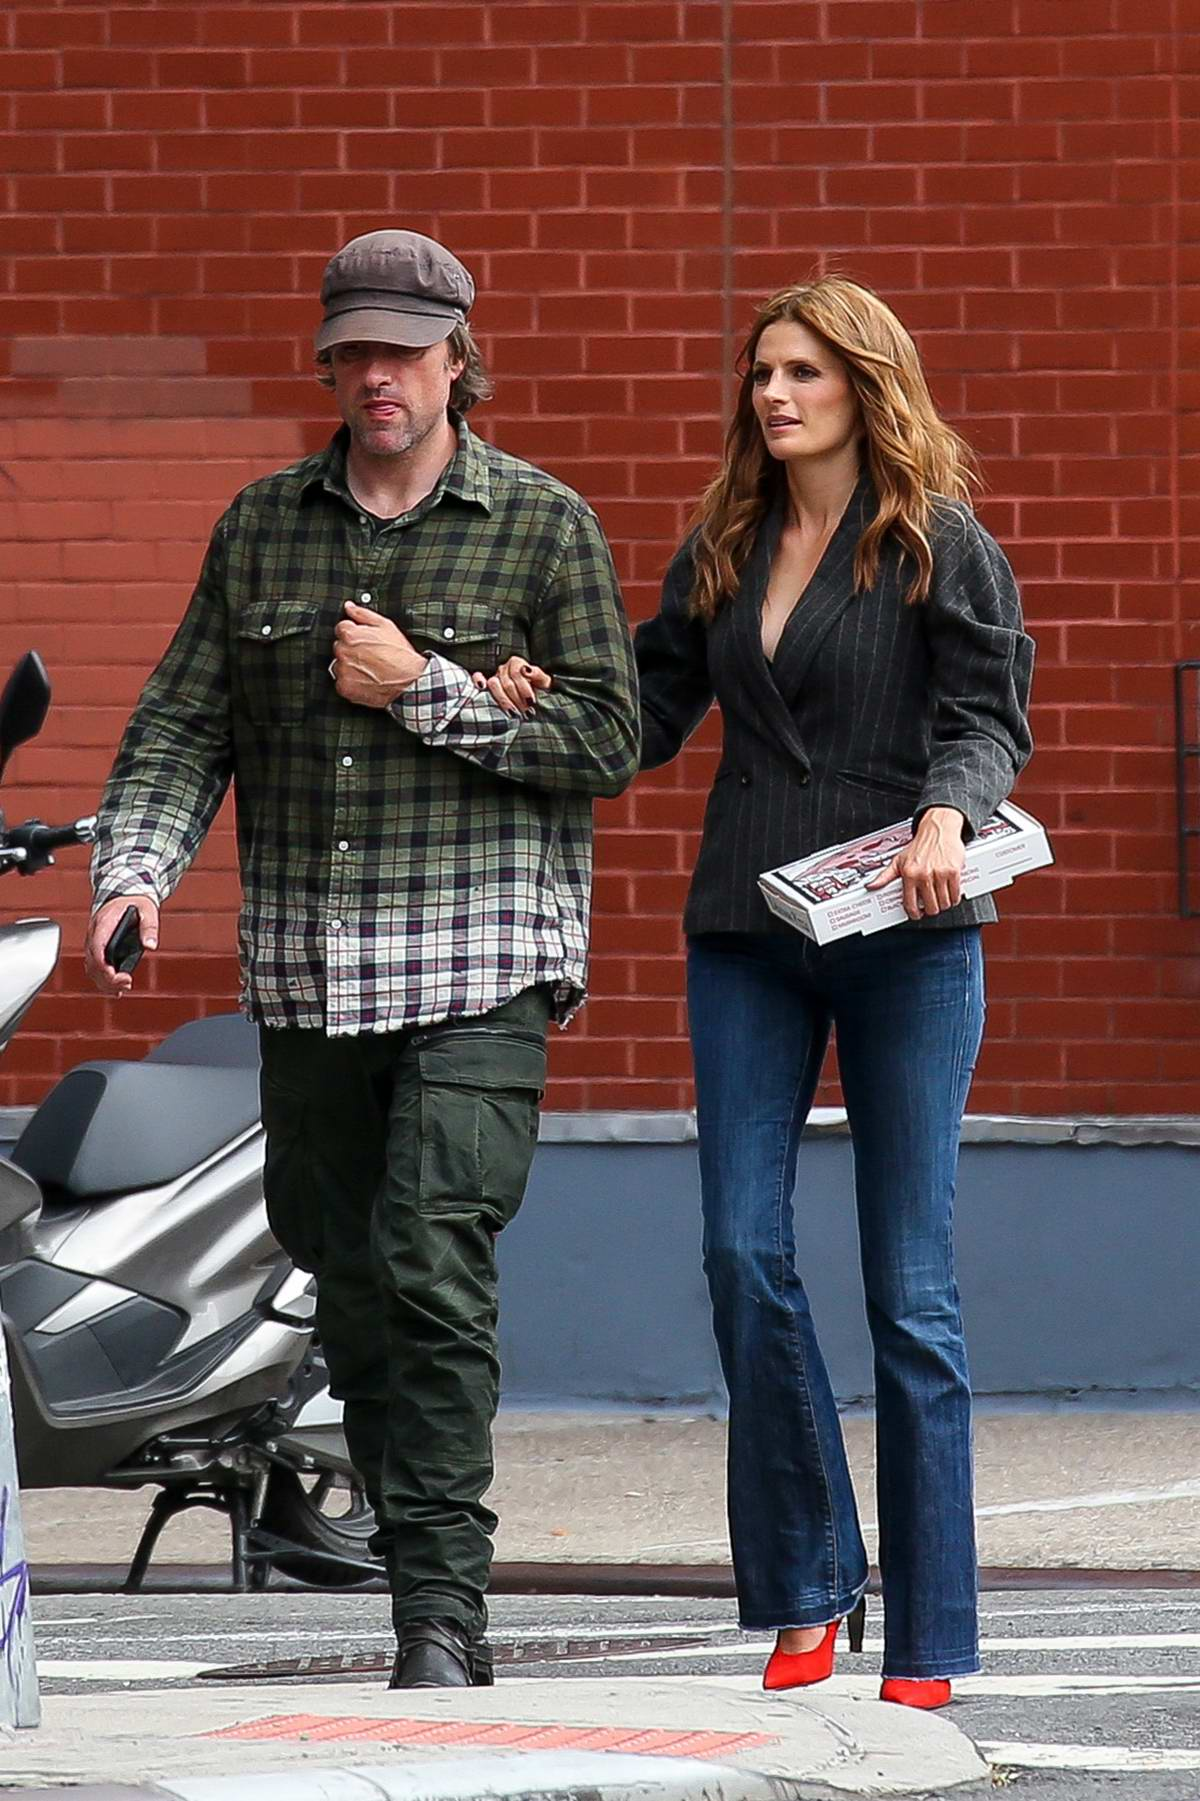 Stana Katic steps out for Pizza with husband Kris Brkljac in New York City